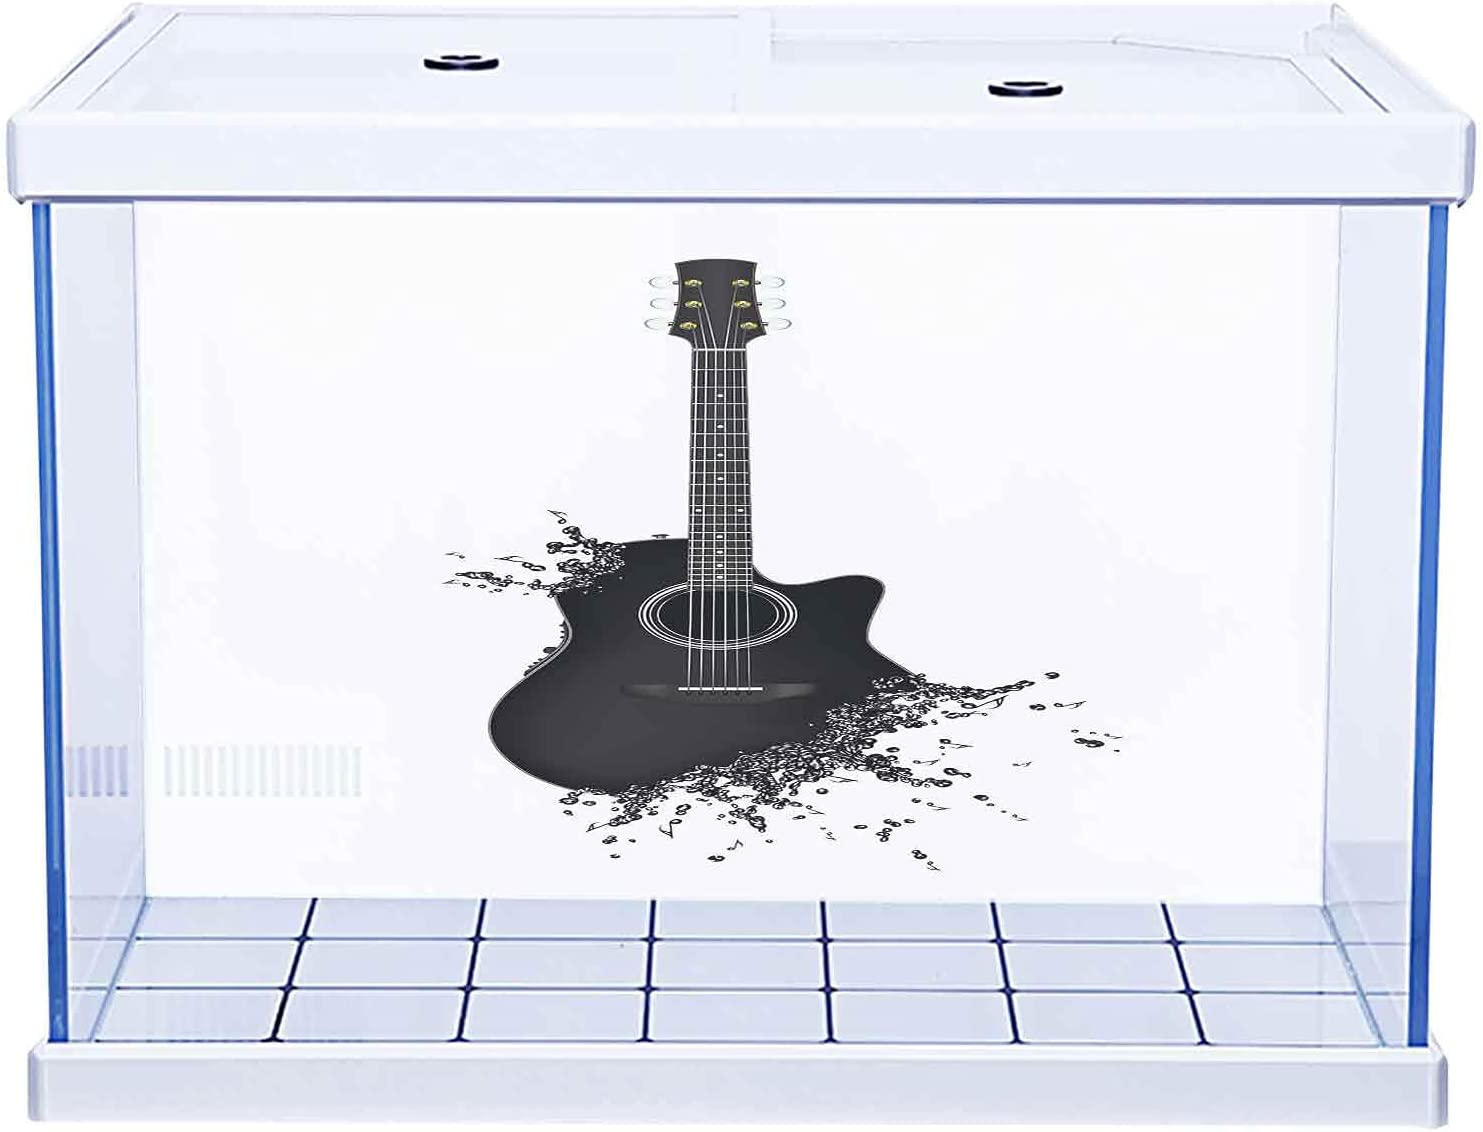 Home Aquarium Décor Backgrounds Instrument Trust Guitar Faded Patte Selling and selling